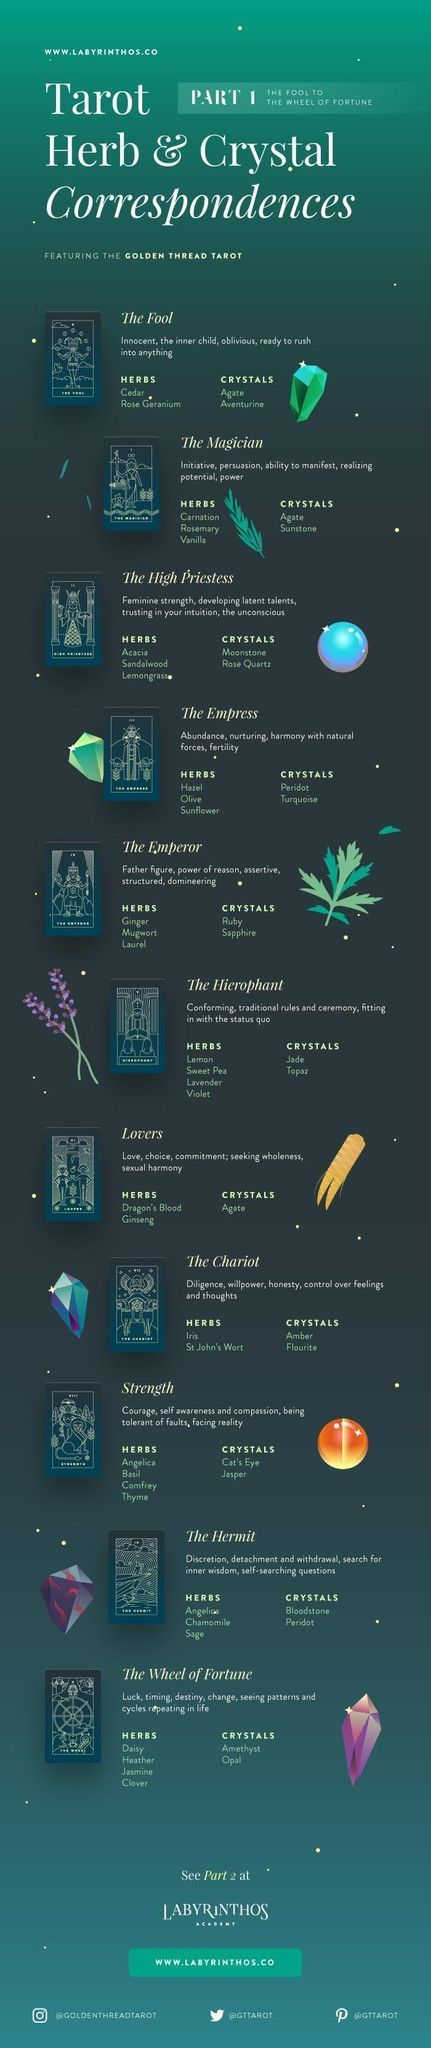 Full Infographic - Crystals, Tarot and Herbal Correspondences Chart - Part 1: From the Fool to the Wheel of Fortune --- Use this for witchcraft, wicca, mysticism, magick, rituals